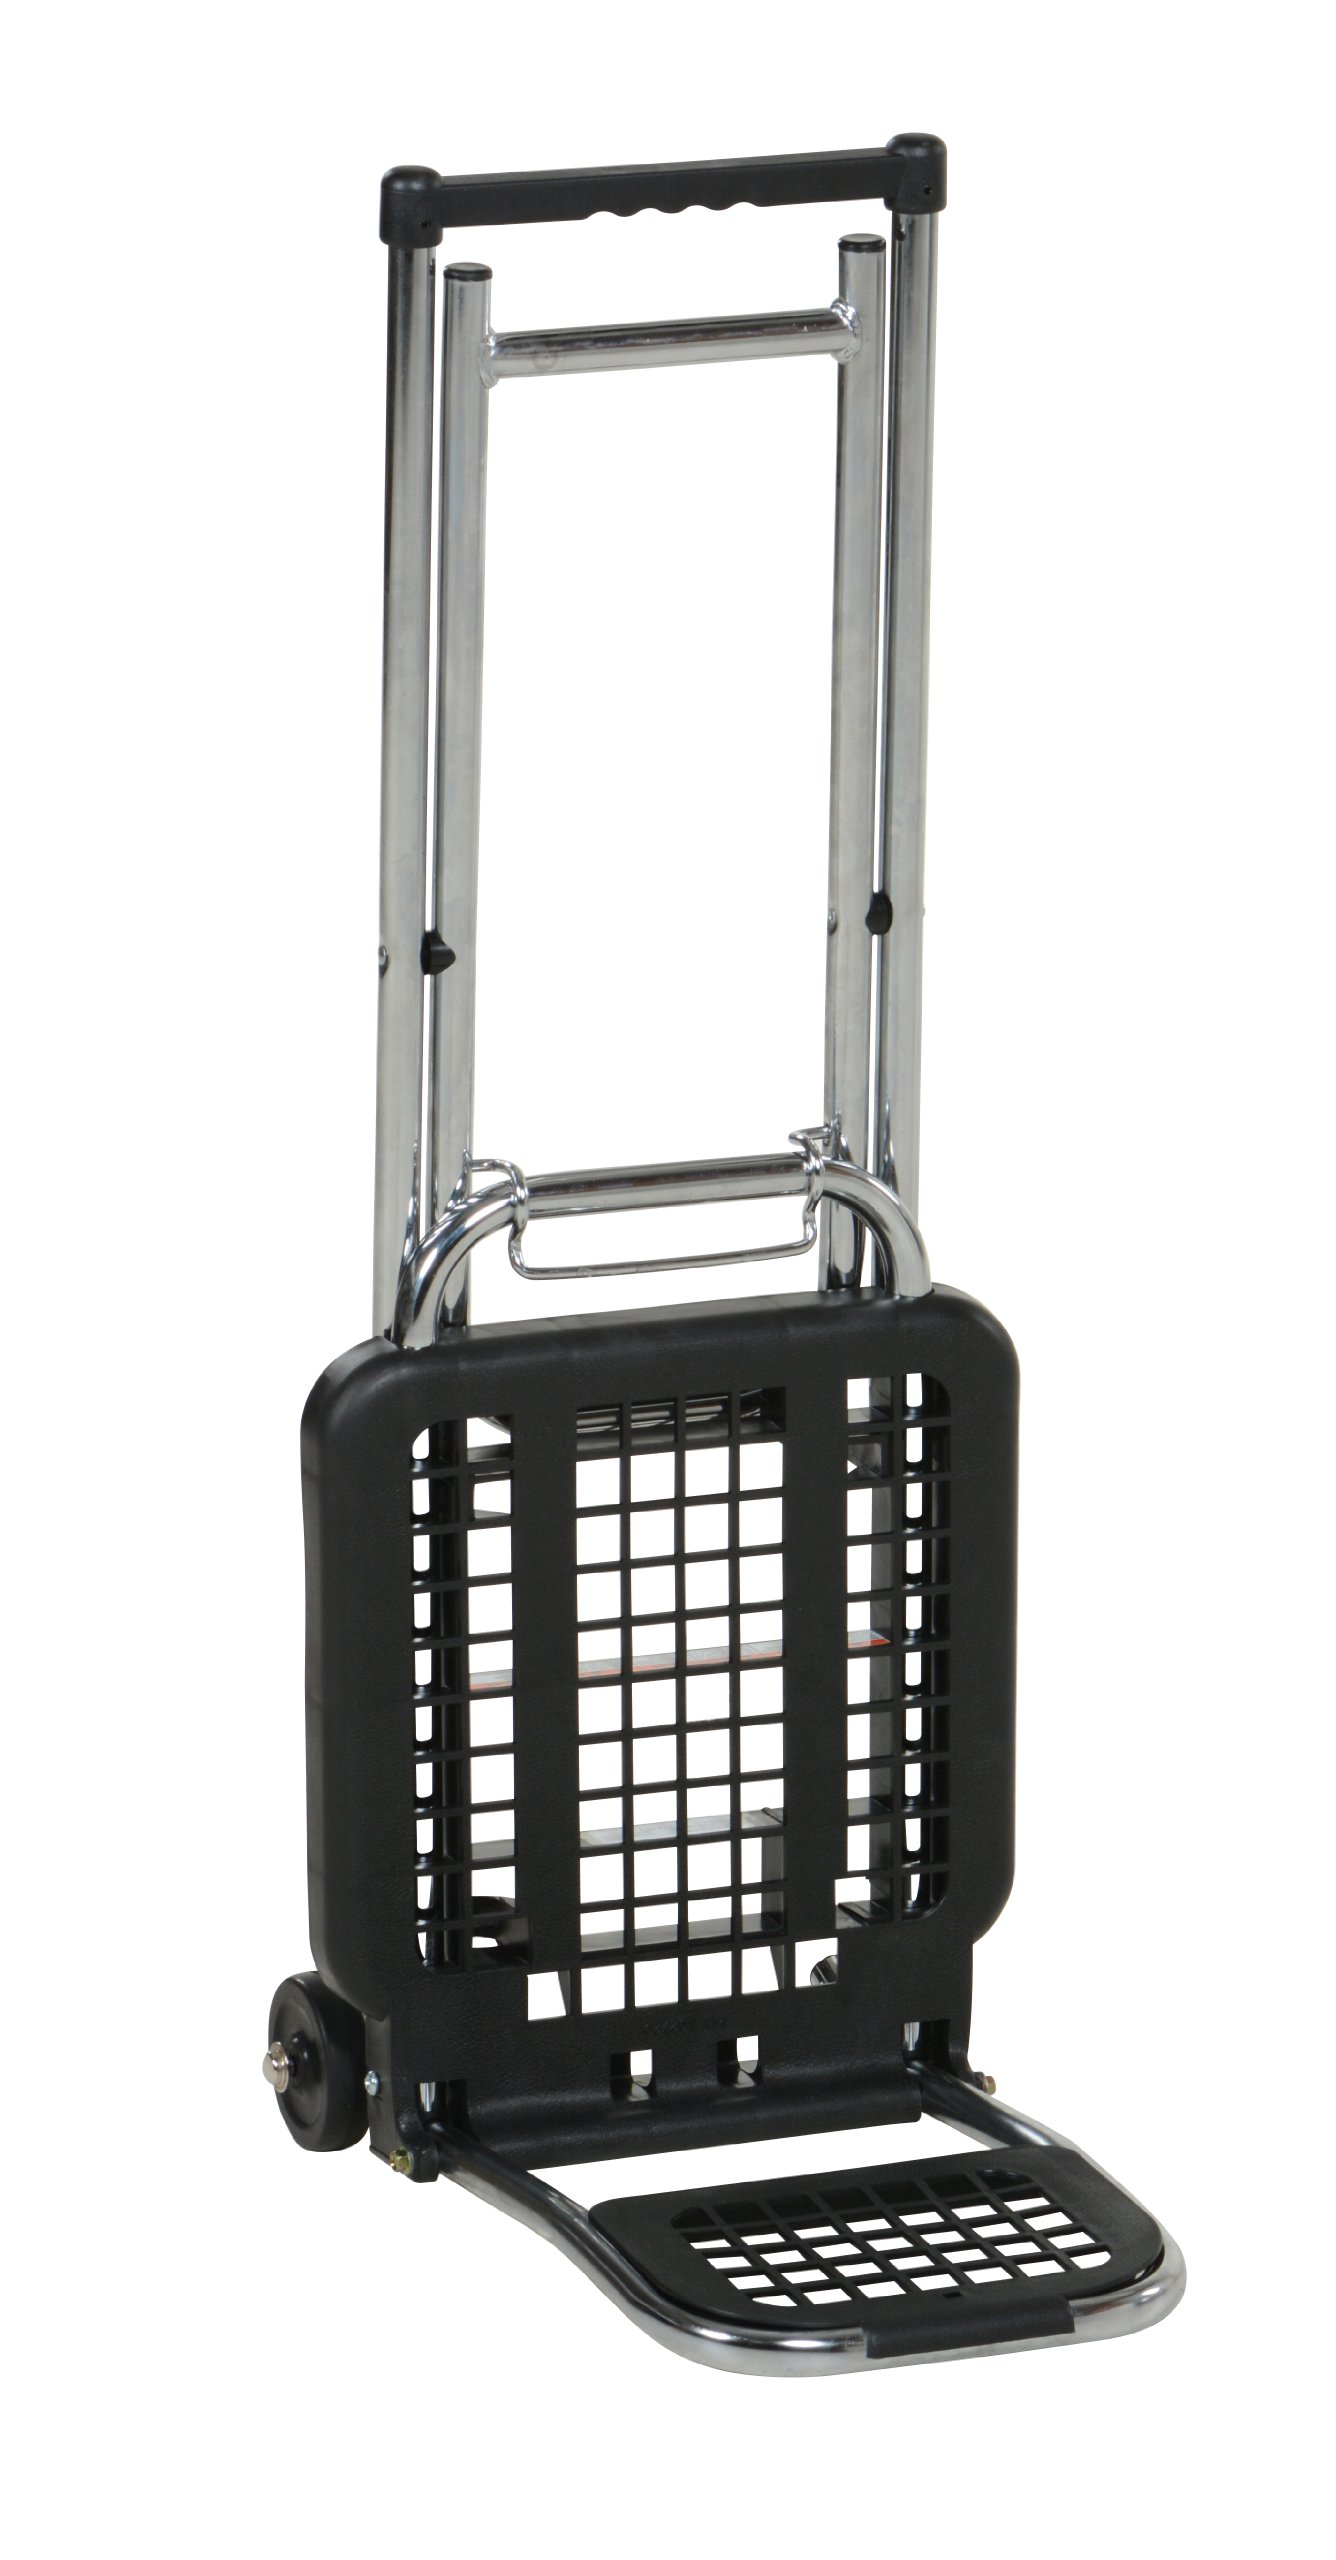 Vestil LC-803 Multi-Function Luggage Cart/Chair, 3'' x 3/4'' Wheel, Chair 65 lbs and Luggage 225 lbs Capacity, Folded 4'' Length x 12'' Width x 36-1/2'' Height